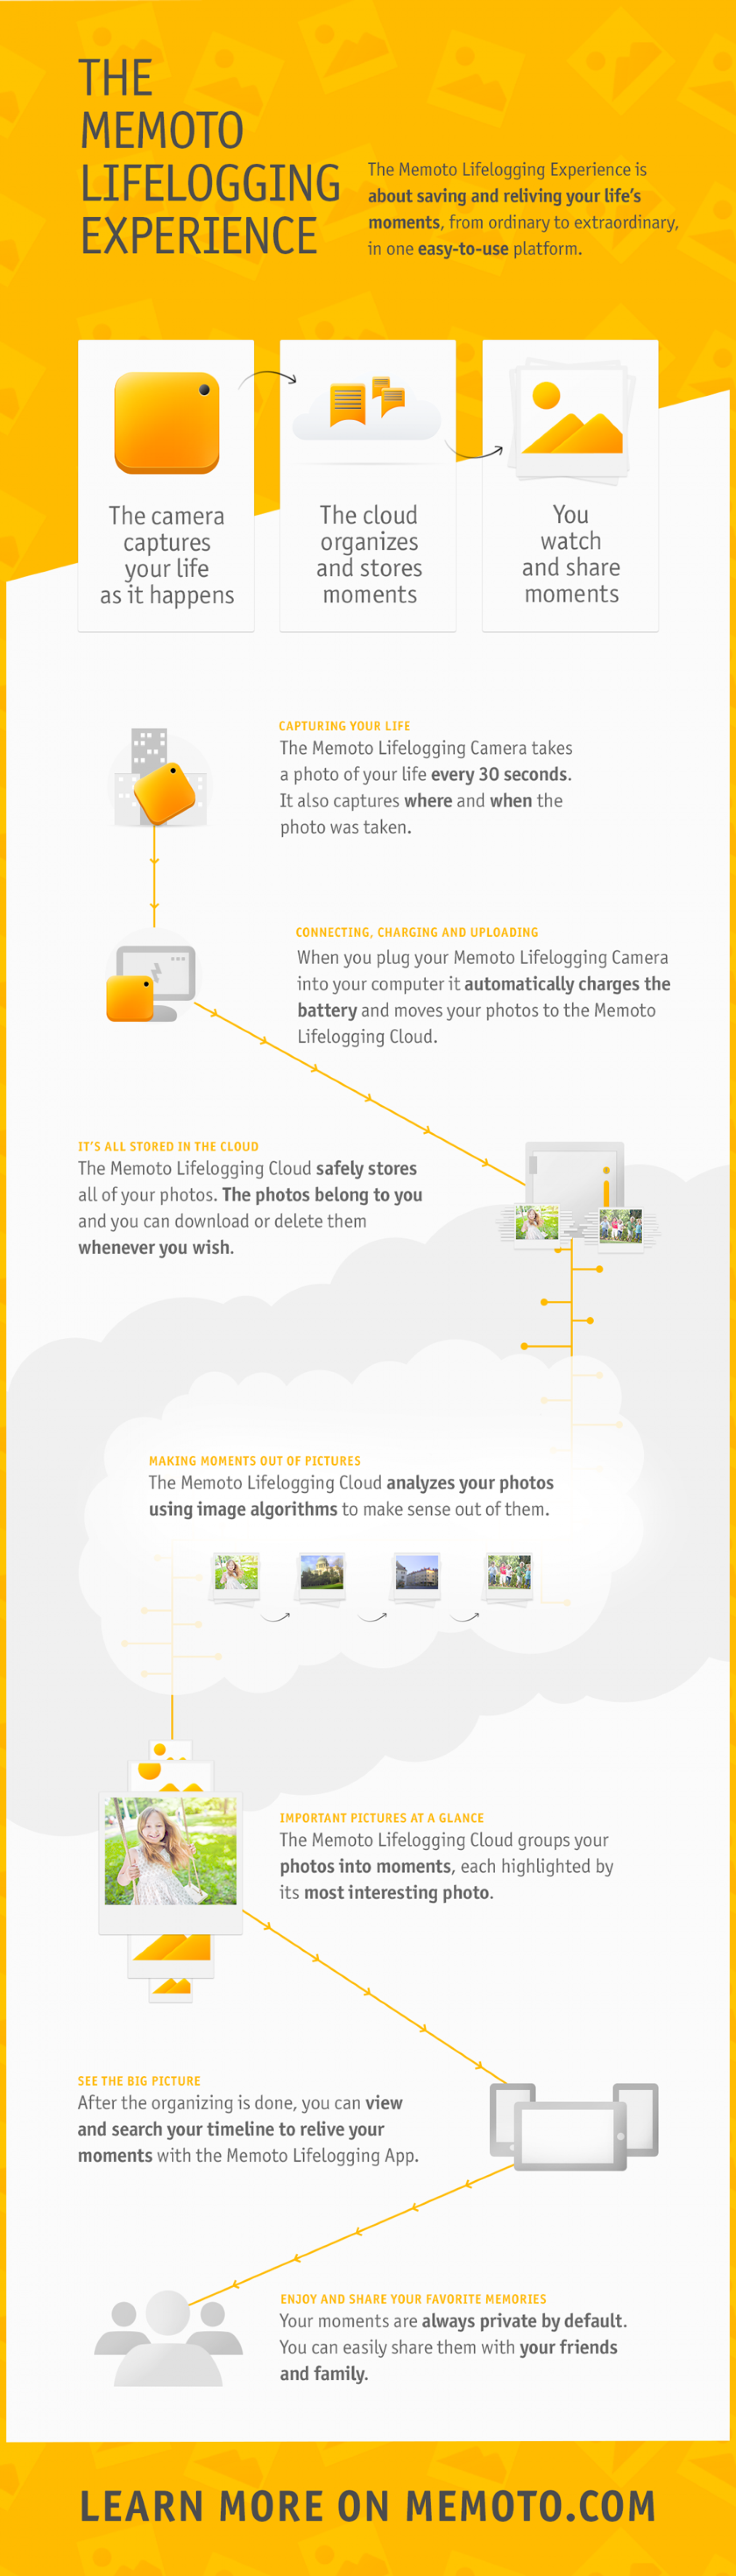 The Memoto Lifelogging Experience Infographic